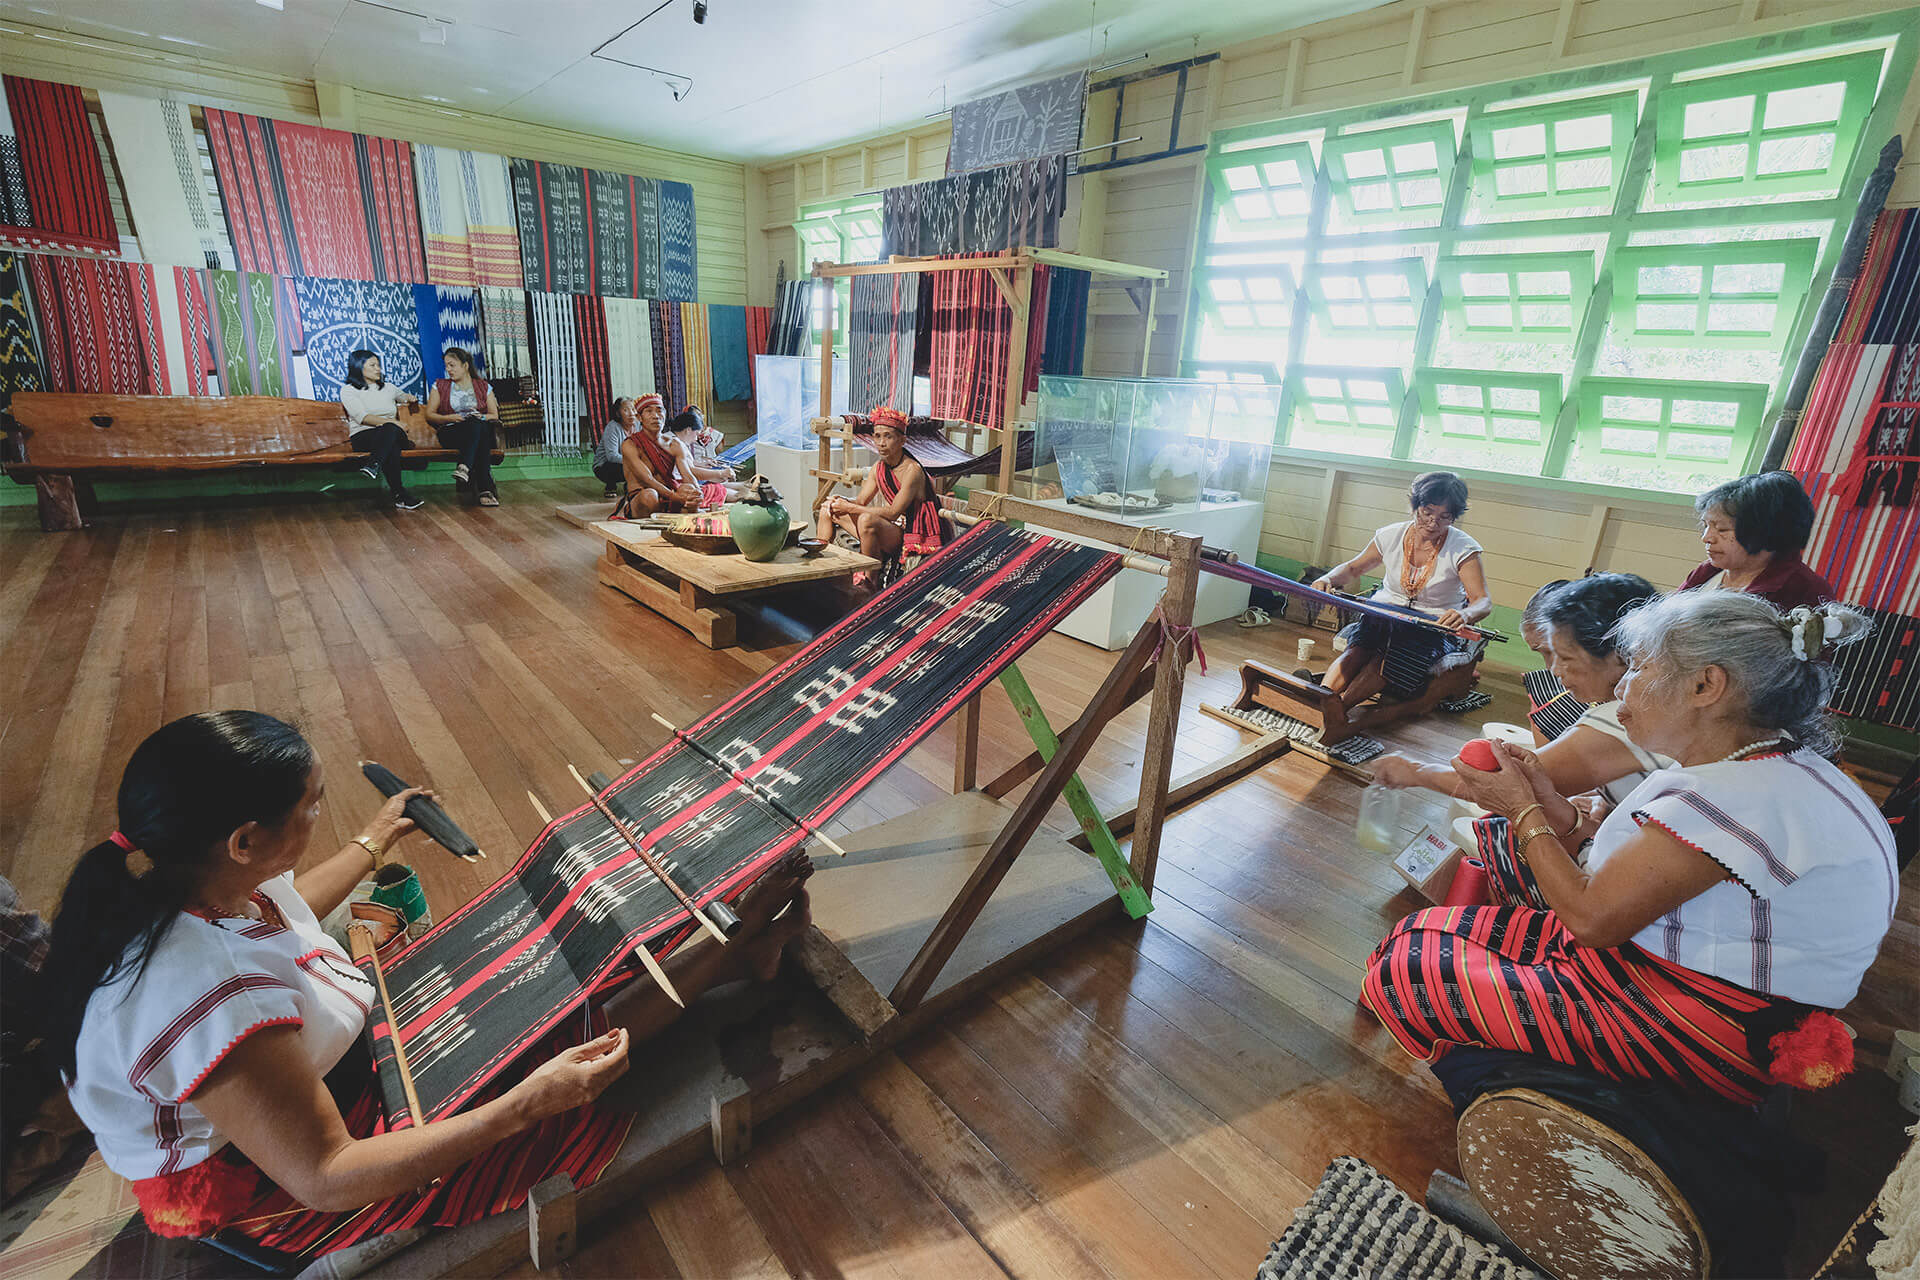 With centuries-old crafts at the core of their identity, the Ifugao town of Kiangan is fighting to preserve its heritage in the face of modern innovation.